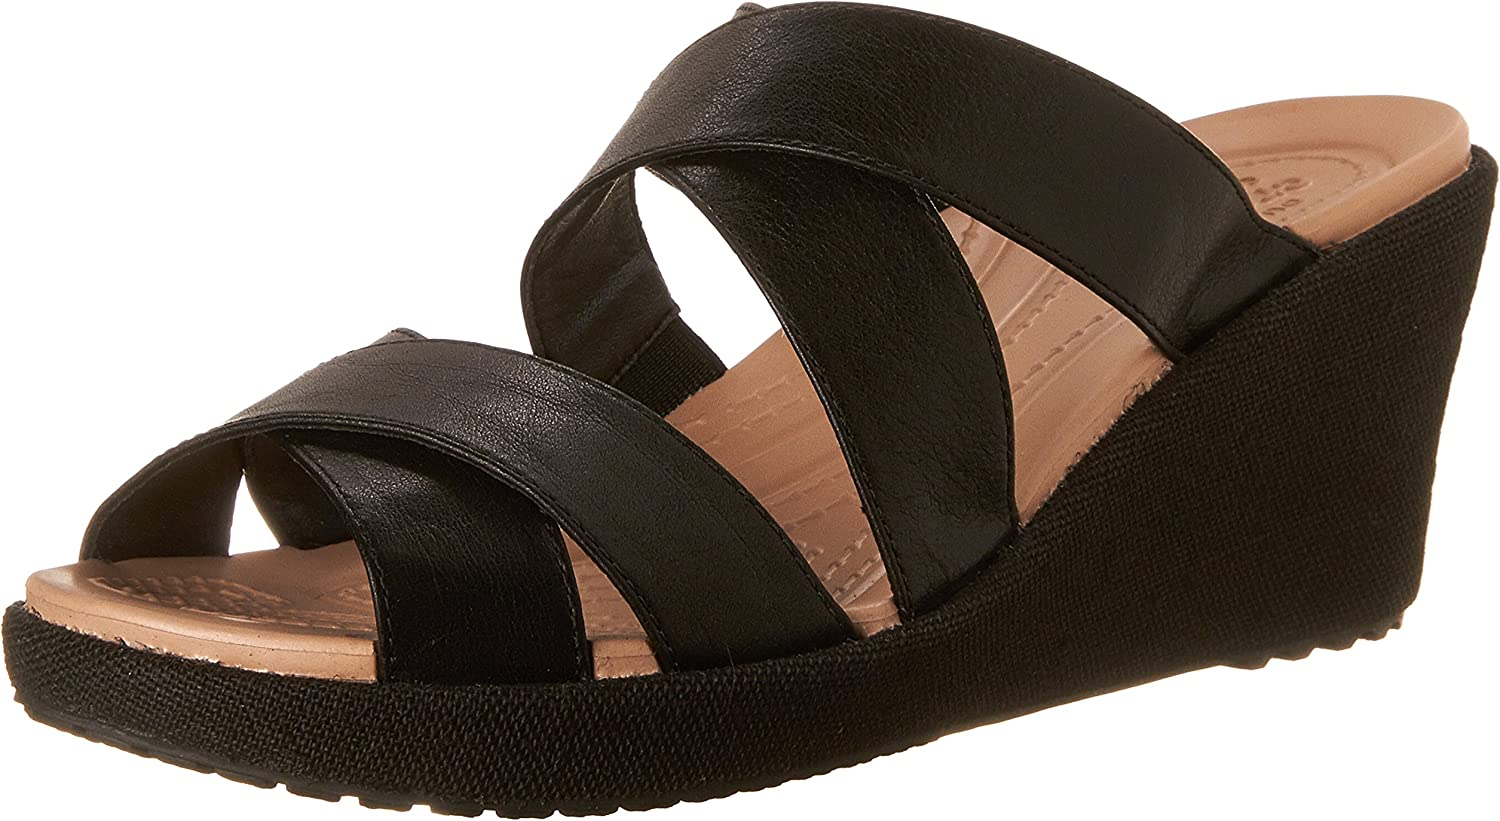 Crocs Women's A Leigh Crisscross W Wedge Sandal